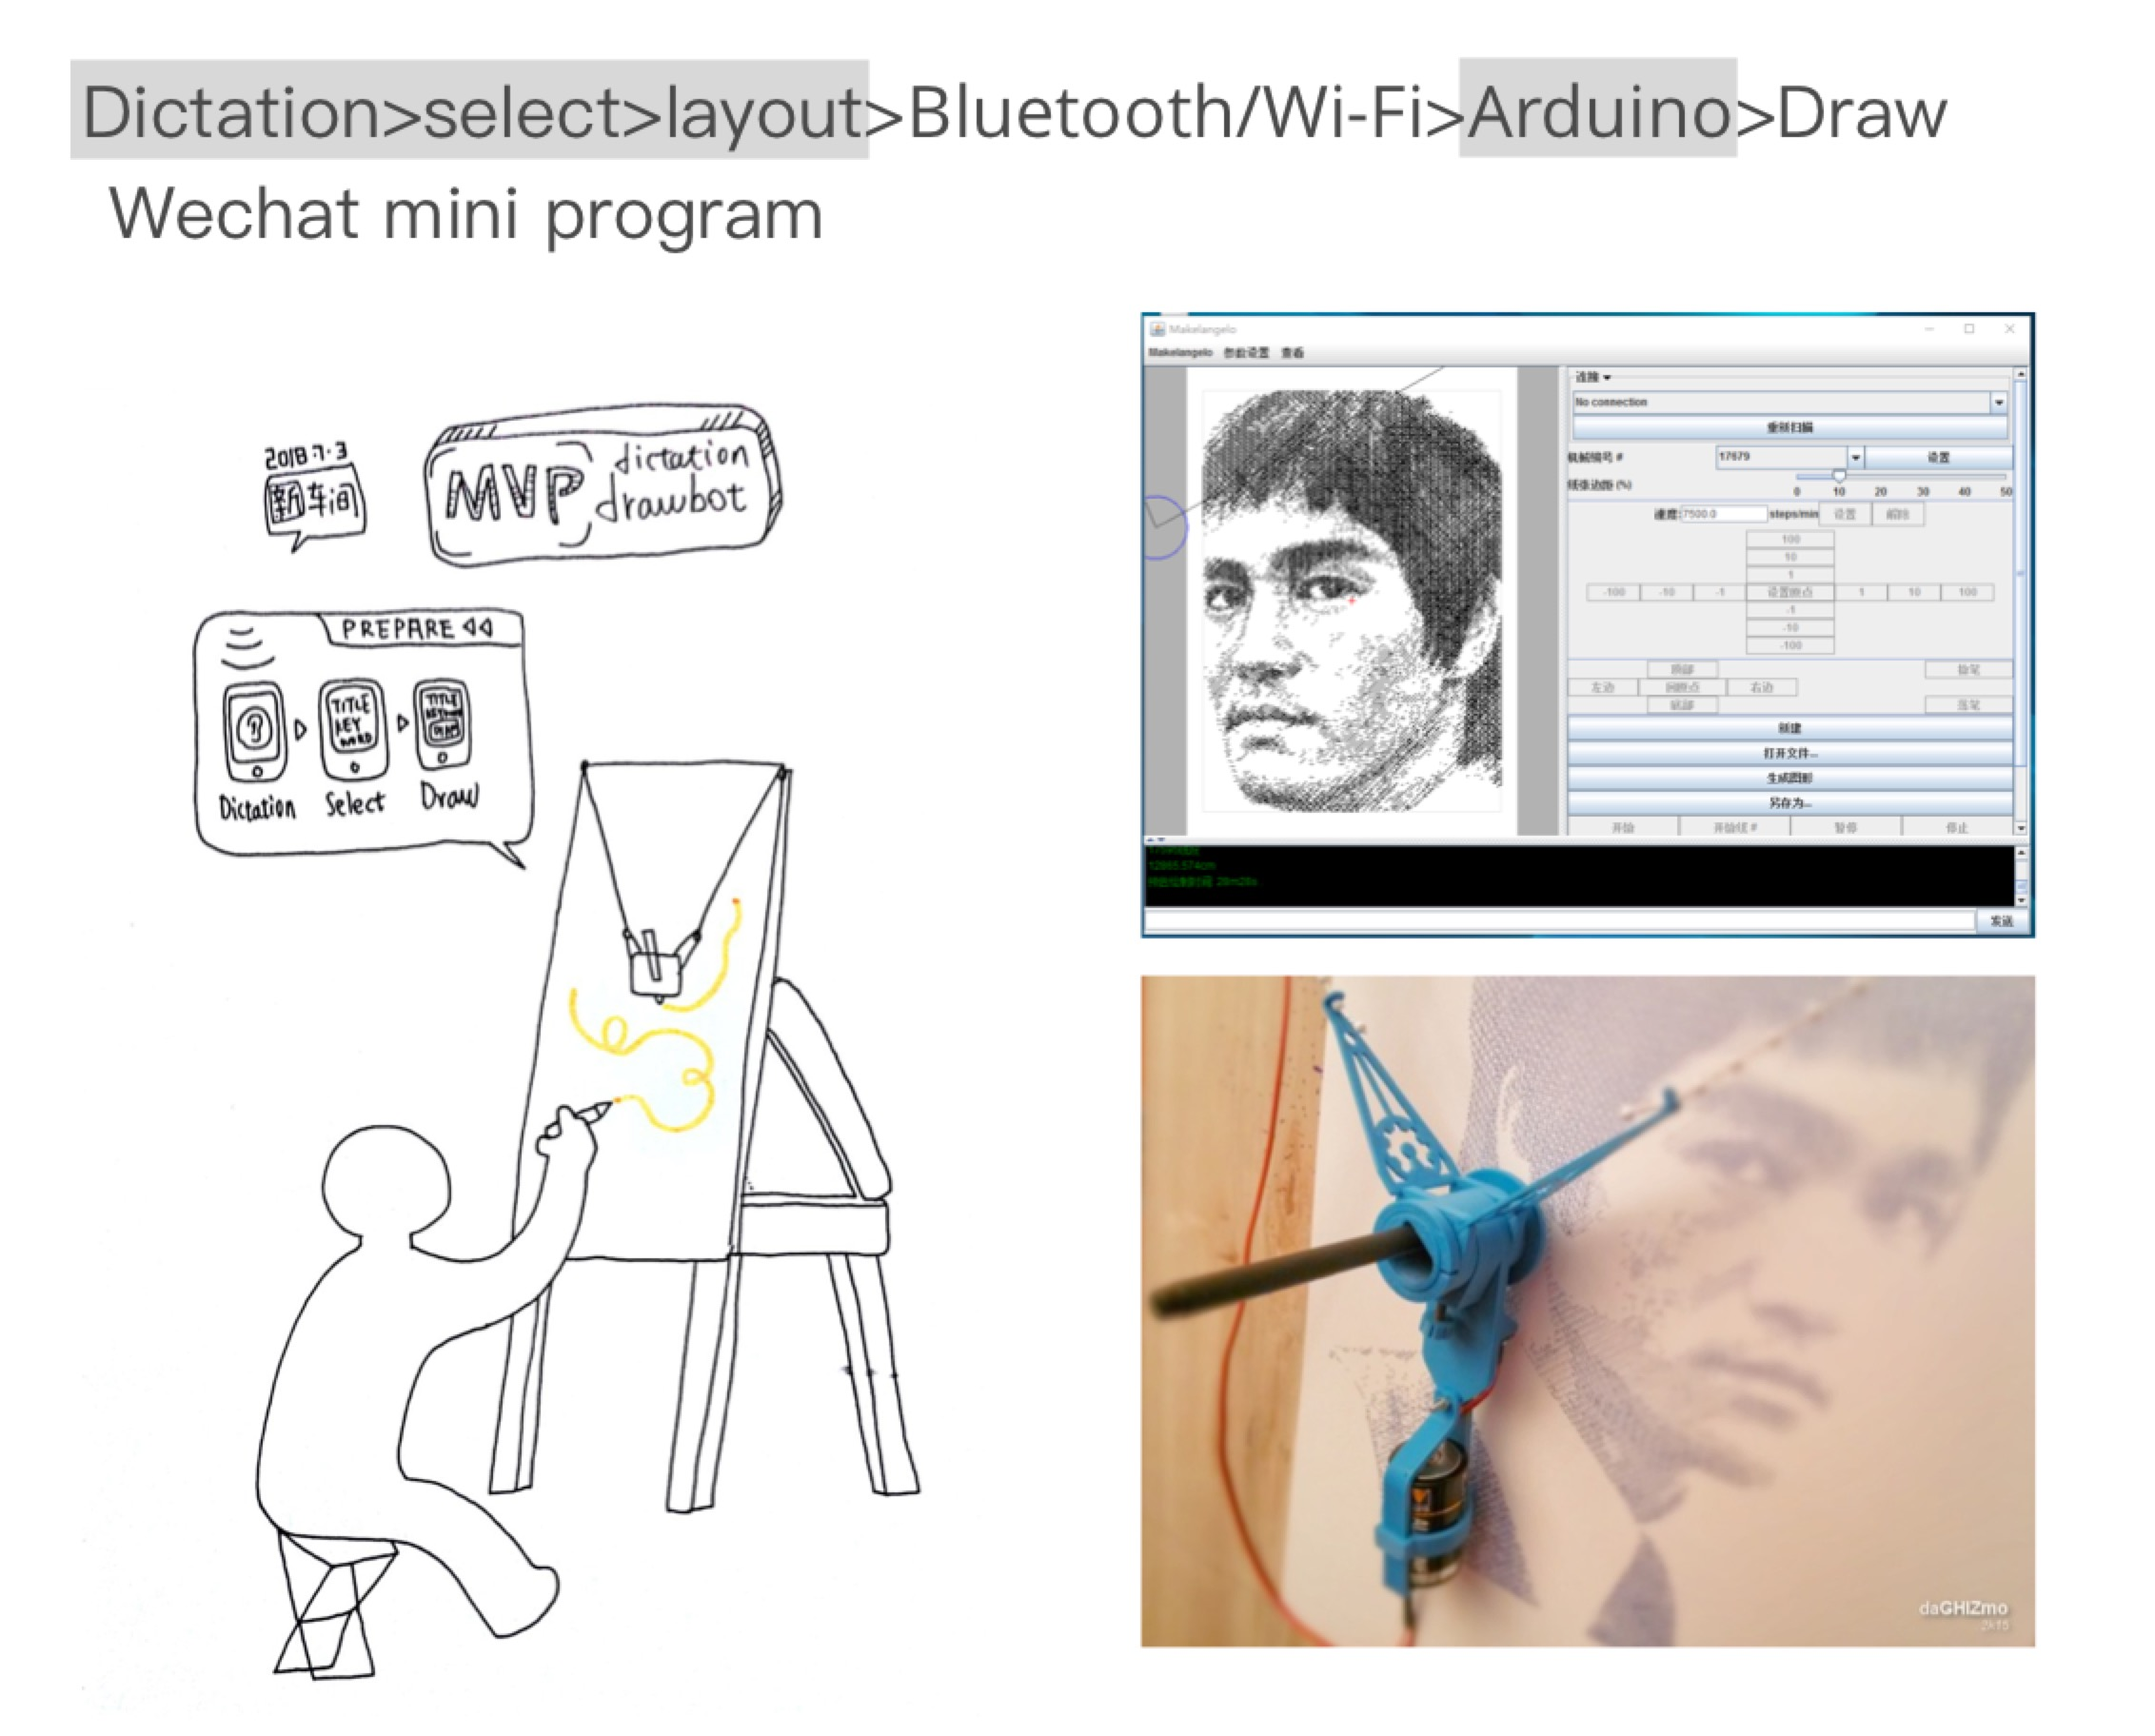 Dictation Drawbot is a dicatation software embeded robot, will perhaps replace human's visual recording in the near future. 听写画画机器人是一个可以画画的机器人,在不久的将来即将取代人类的会议视觉记录。